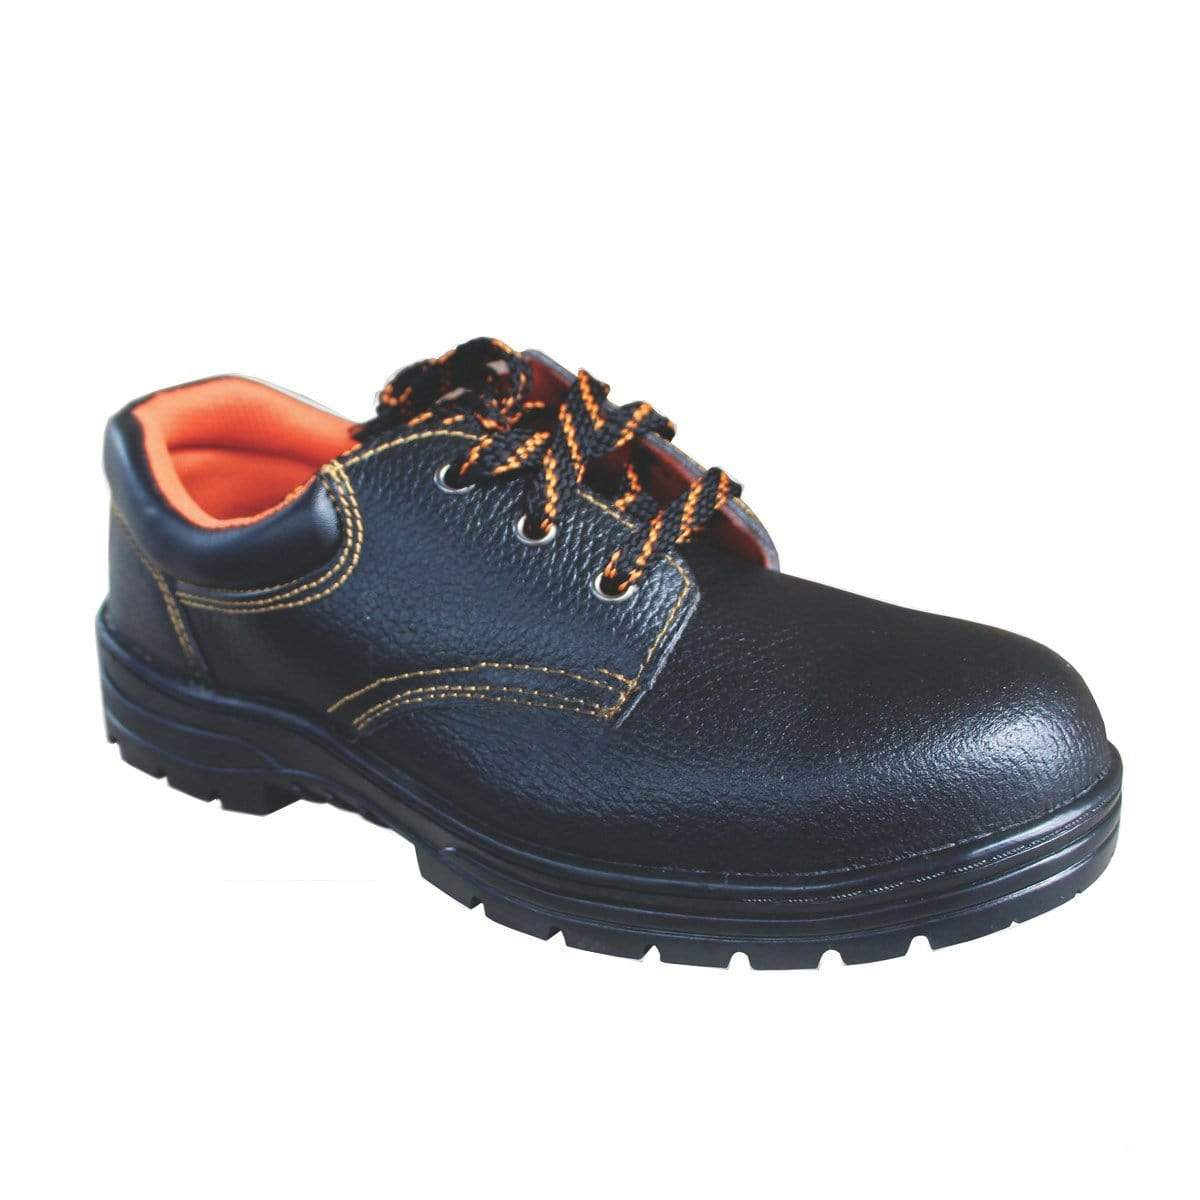 ANEKA Worker Safety Shoes Safety Boots Steel Toe Cap Kasut UK5 1000#